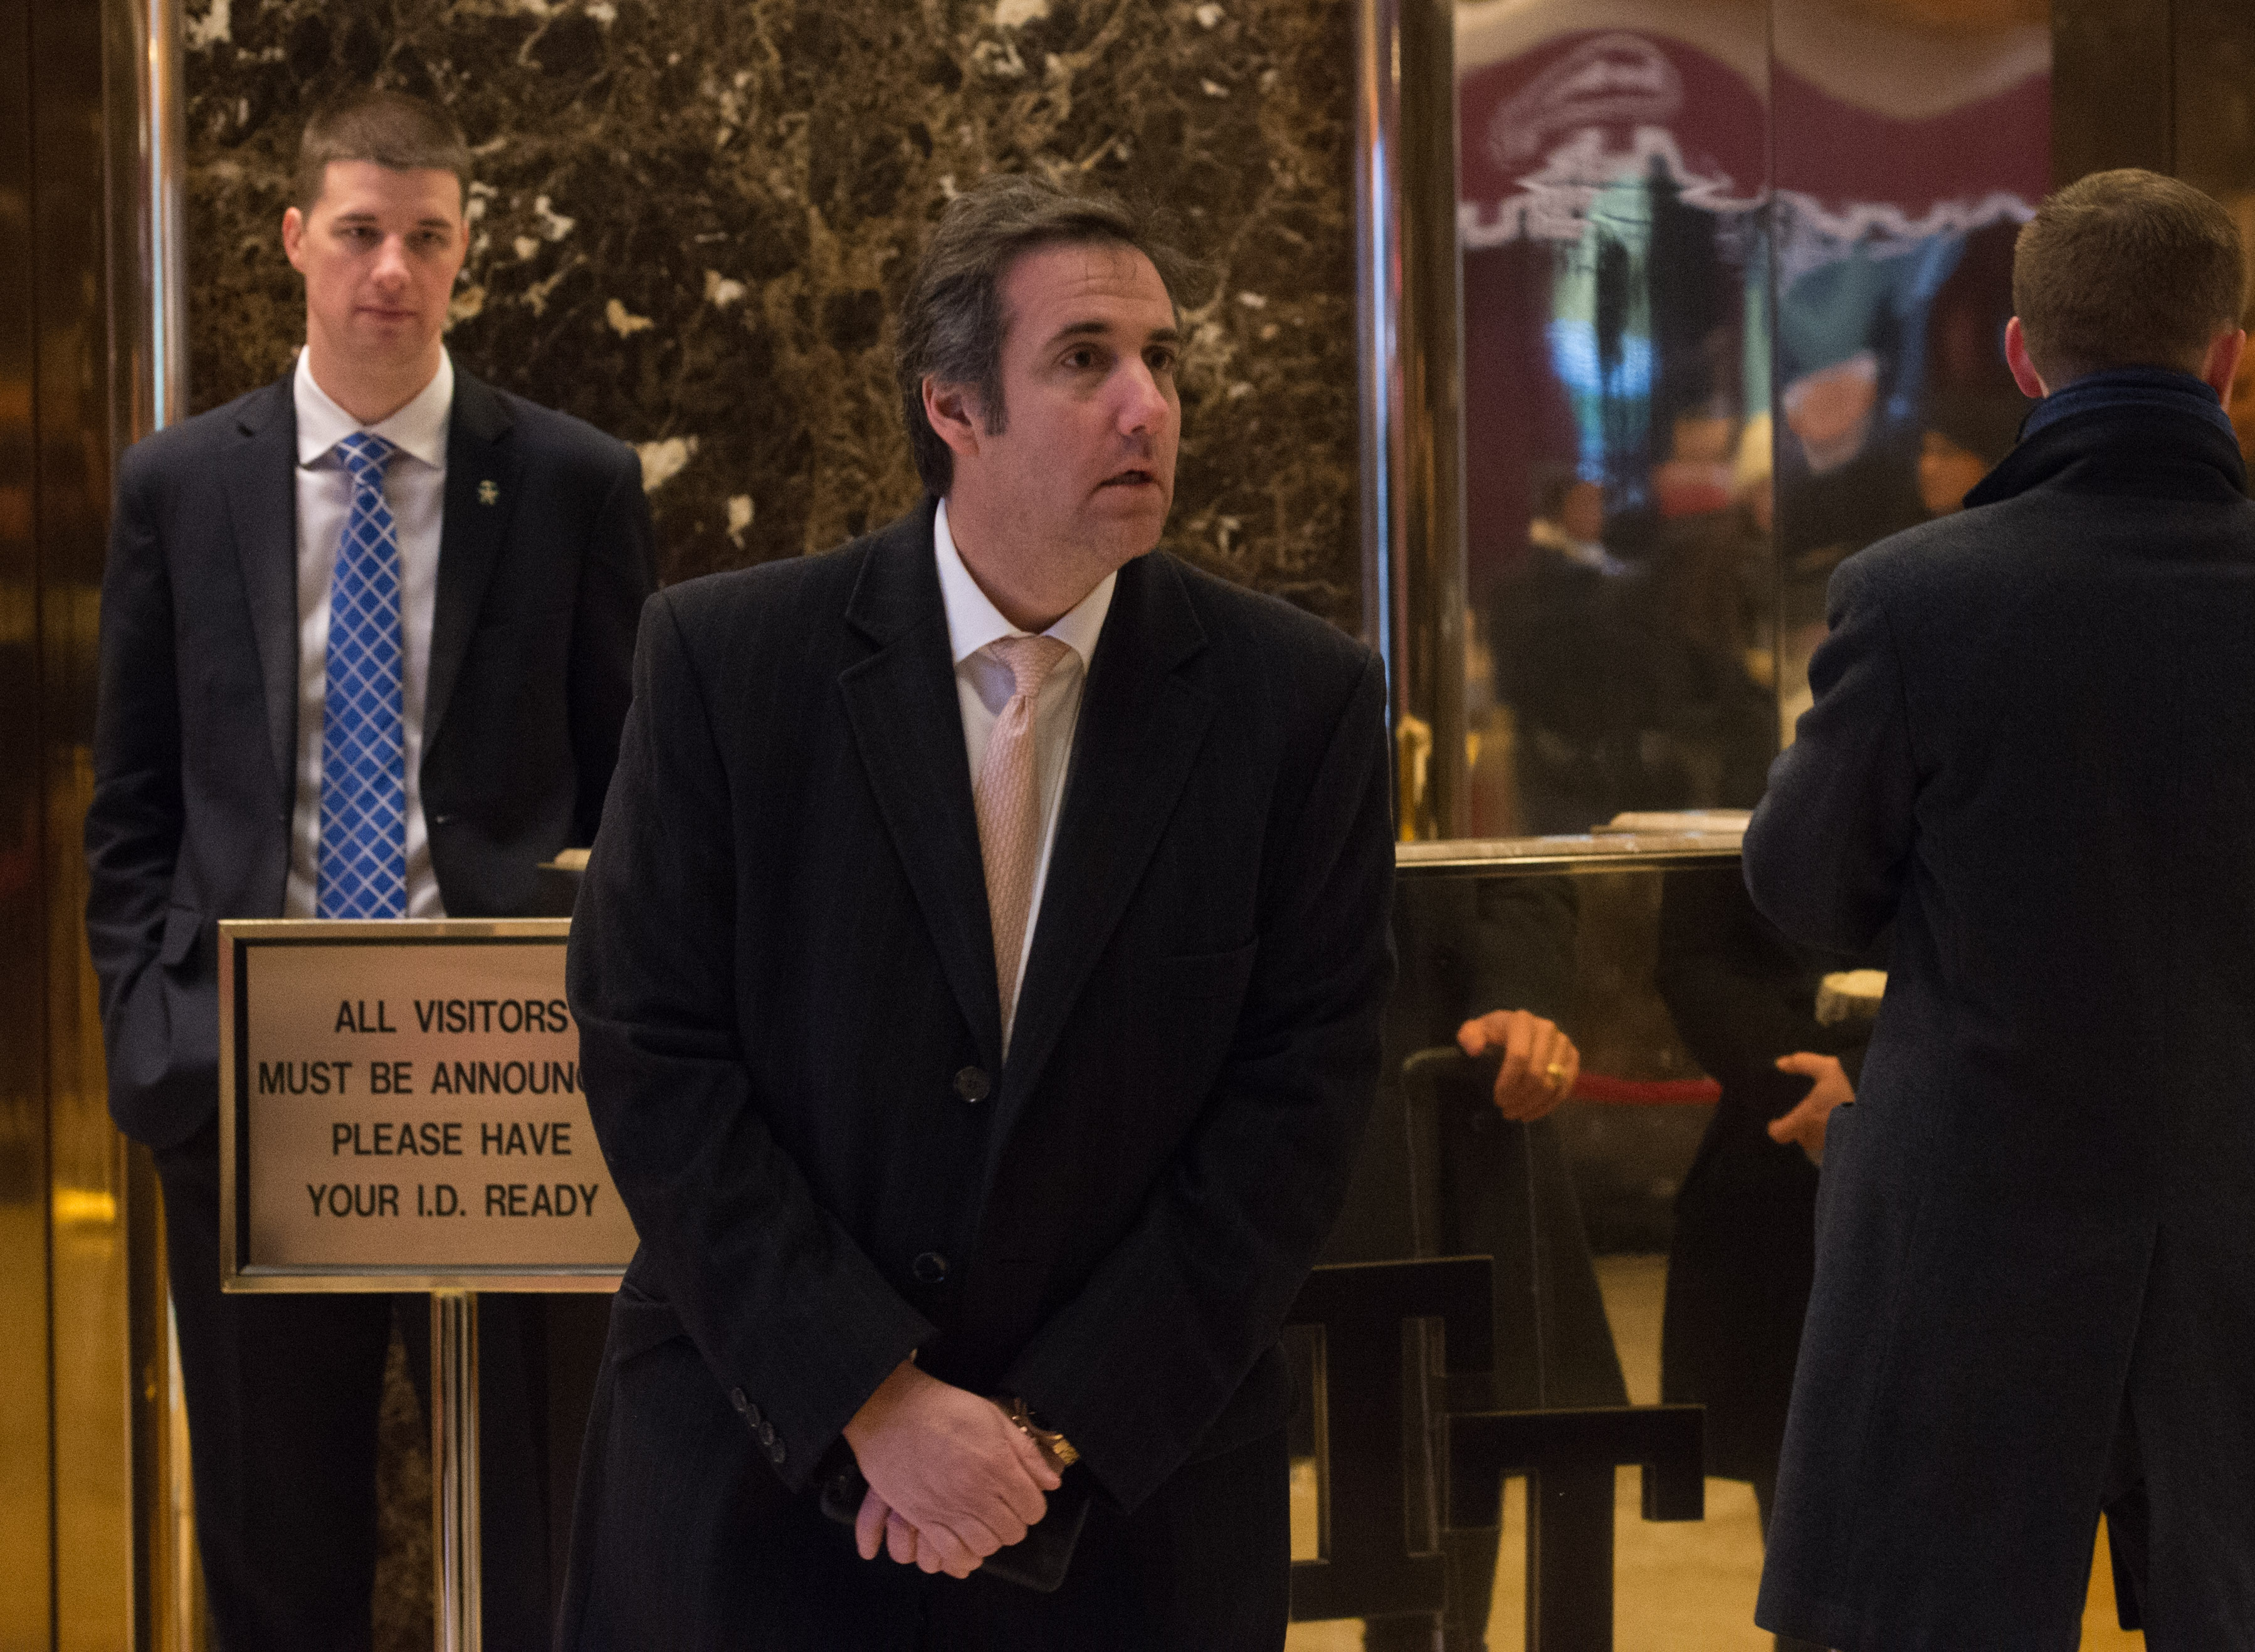 Attorney Michael Cohen arrives to Trump Tower for meetings with President-elect Donald Trump on December 16, 2016 in New York.